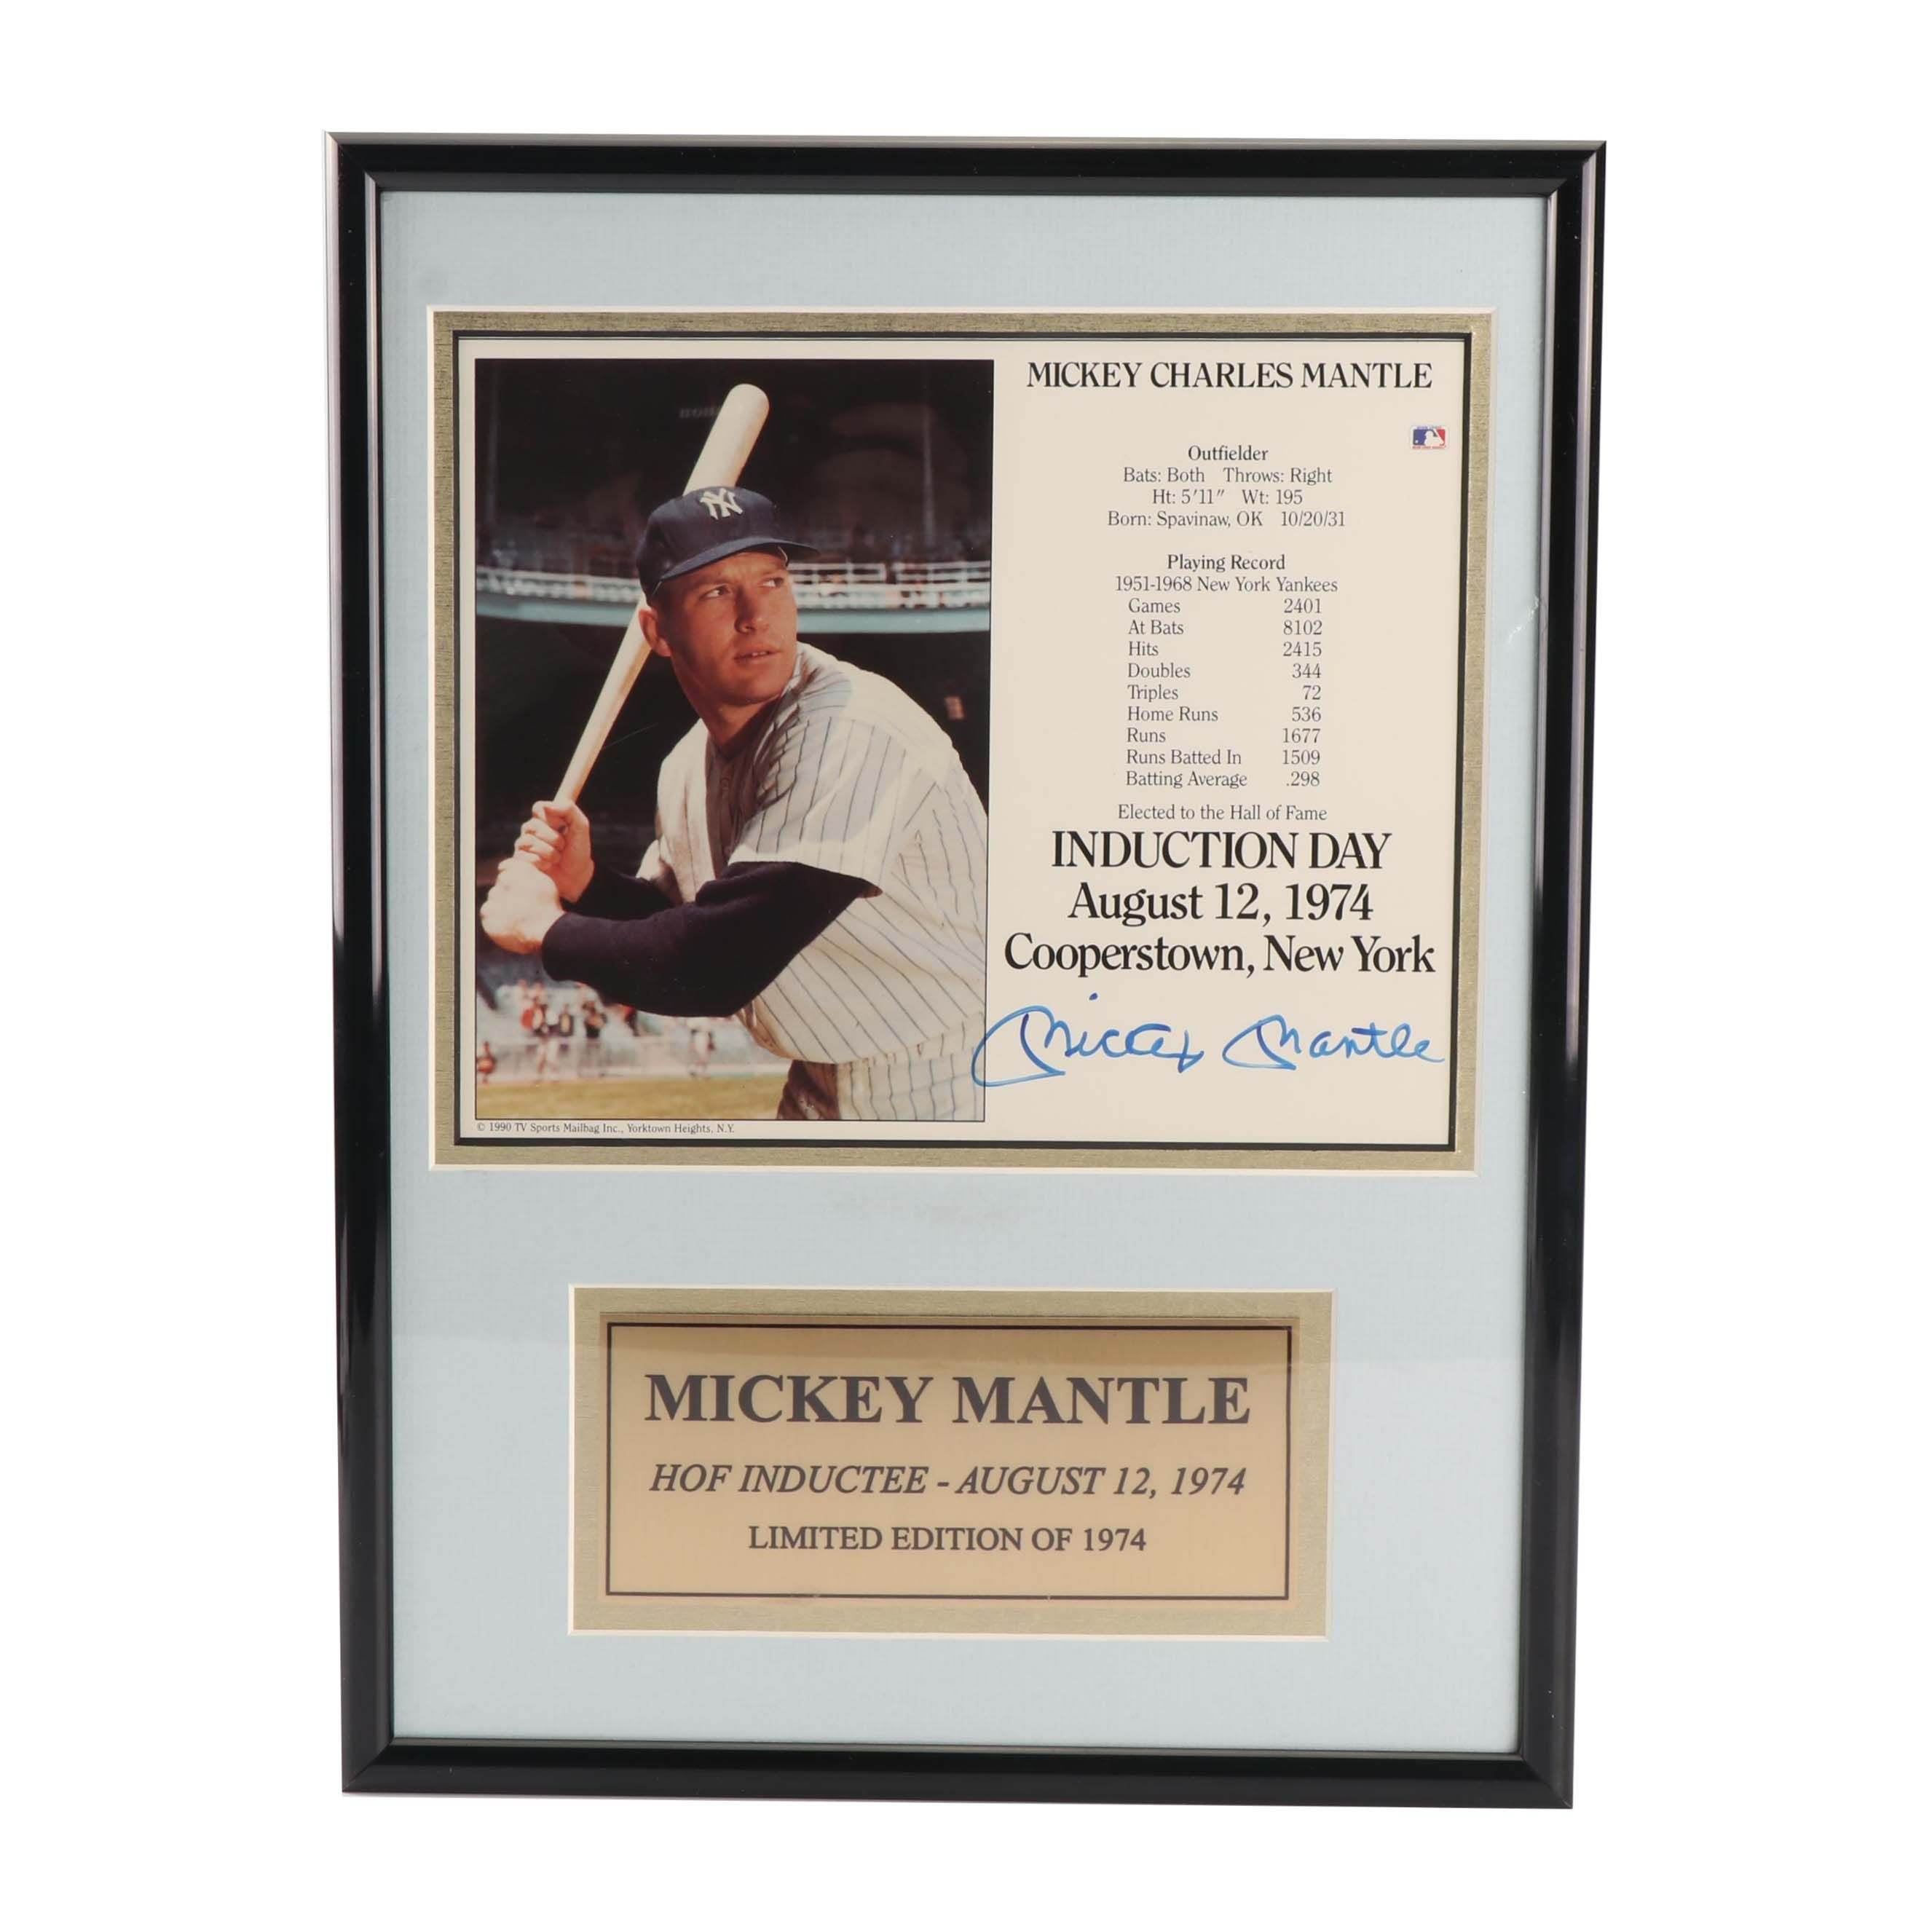 Mickey Mantle Autographed Hall of Fame Induction Day Display